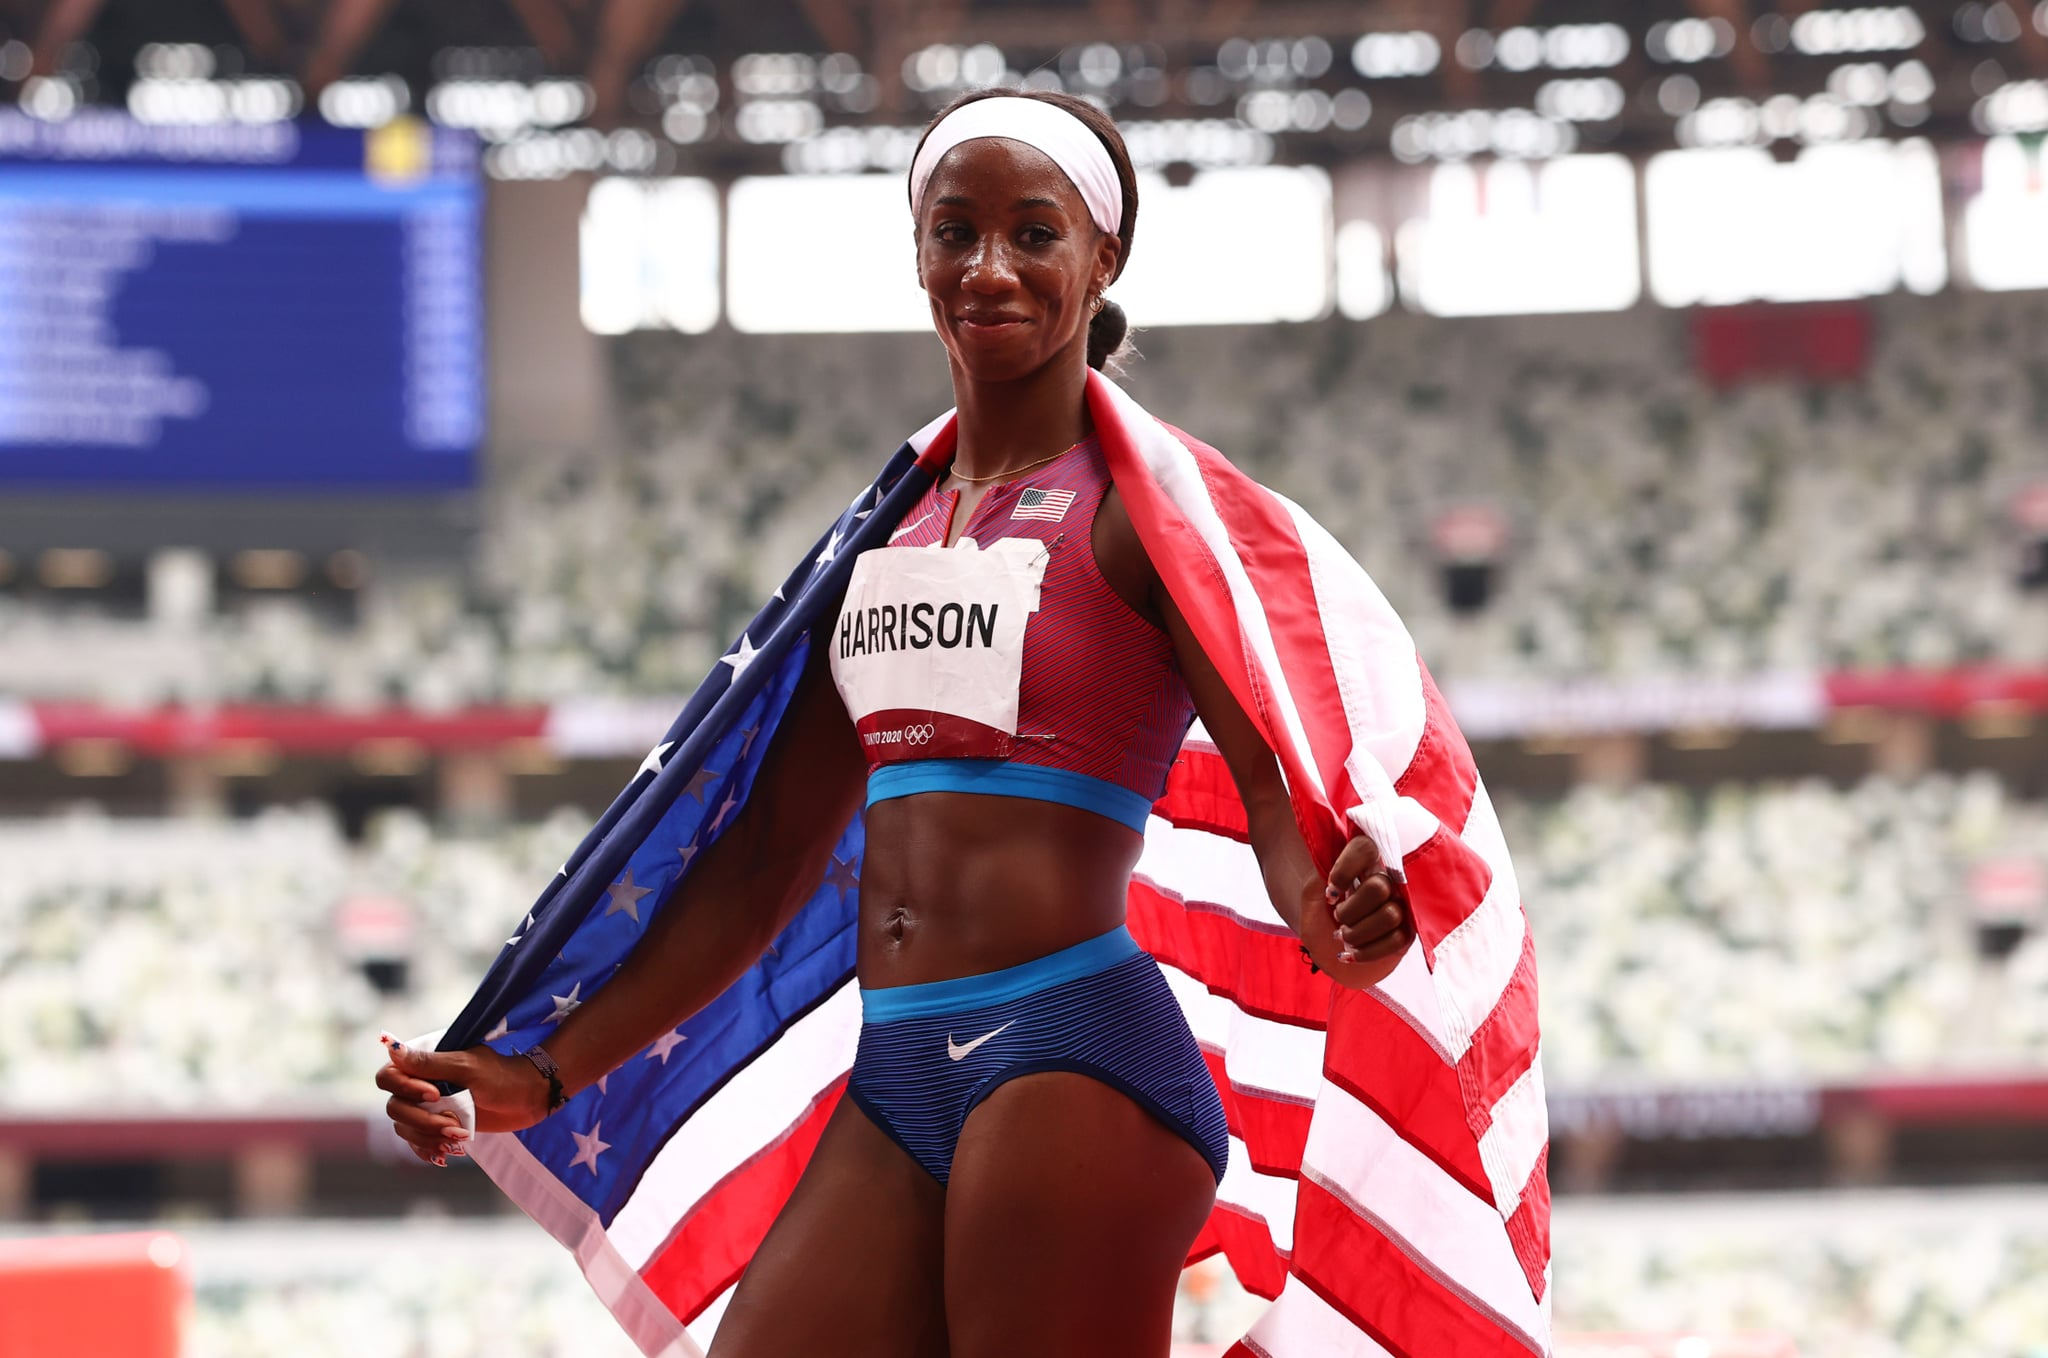 TOKYO, JAPAN - AUGUST 02: Kendra Harrison of Team United States reacts after winning the silver medal in the Women's 100m Hurdles Final on day ten of the Tokyo 2020 Olympic Games at Olympic Stadium on August 02, 2021 in Tokyo, Japan. (Photo by Ryan Pierse/Getty Images)